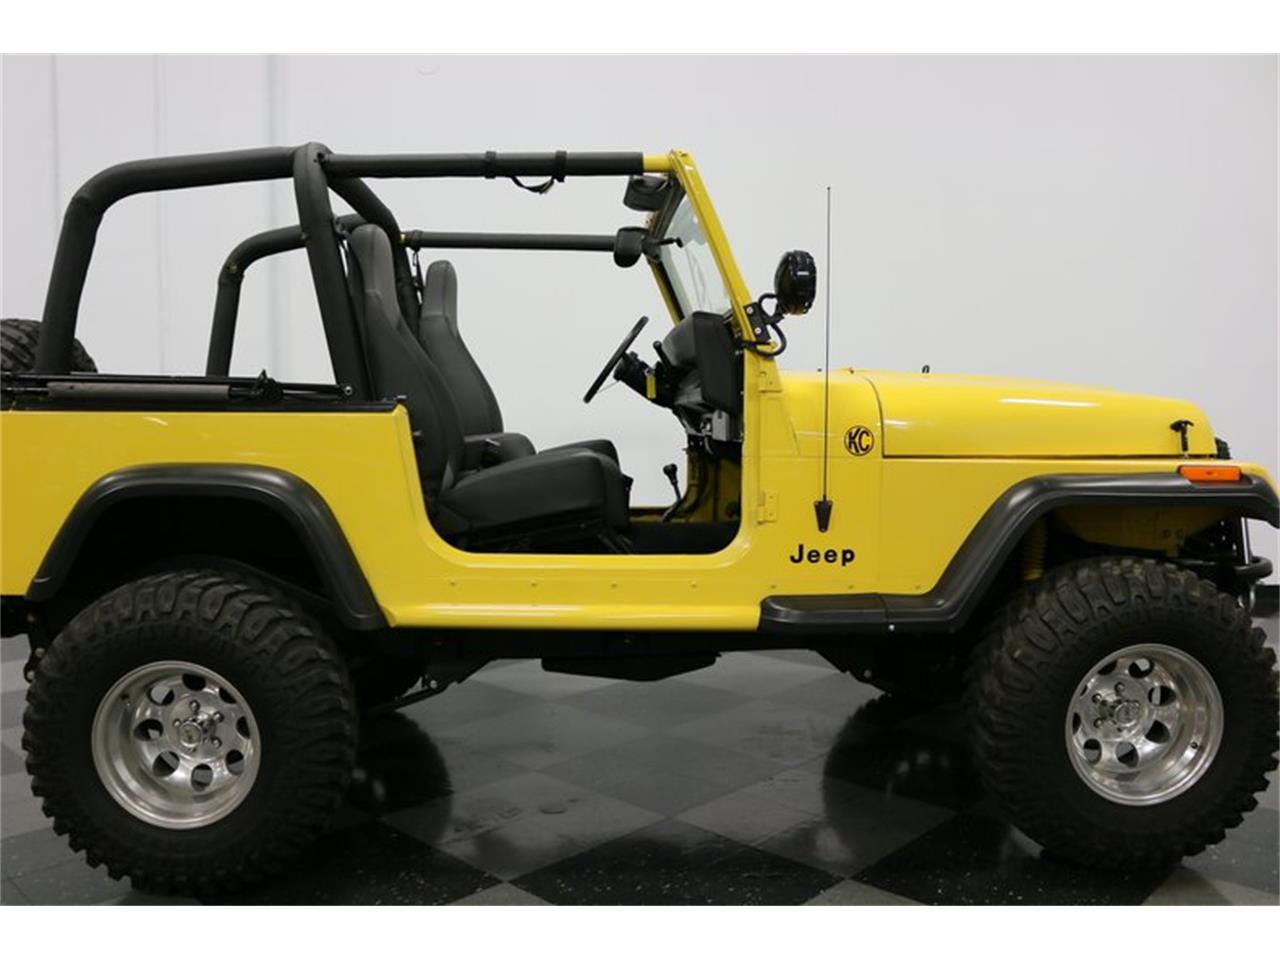 Large Picture of '93 Jeep Wrangler located in Texas - $21,995.00 - P701